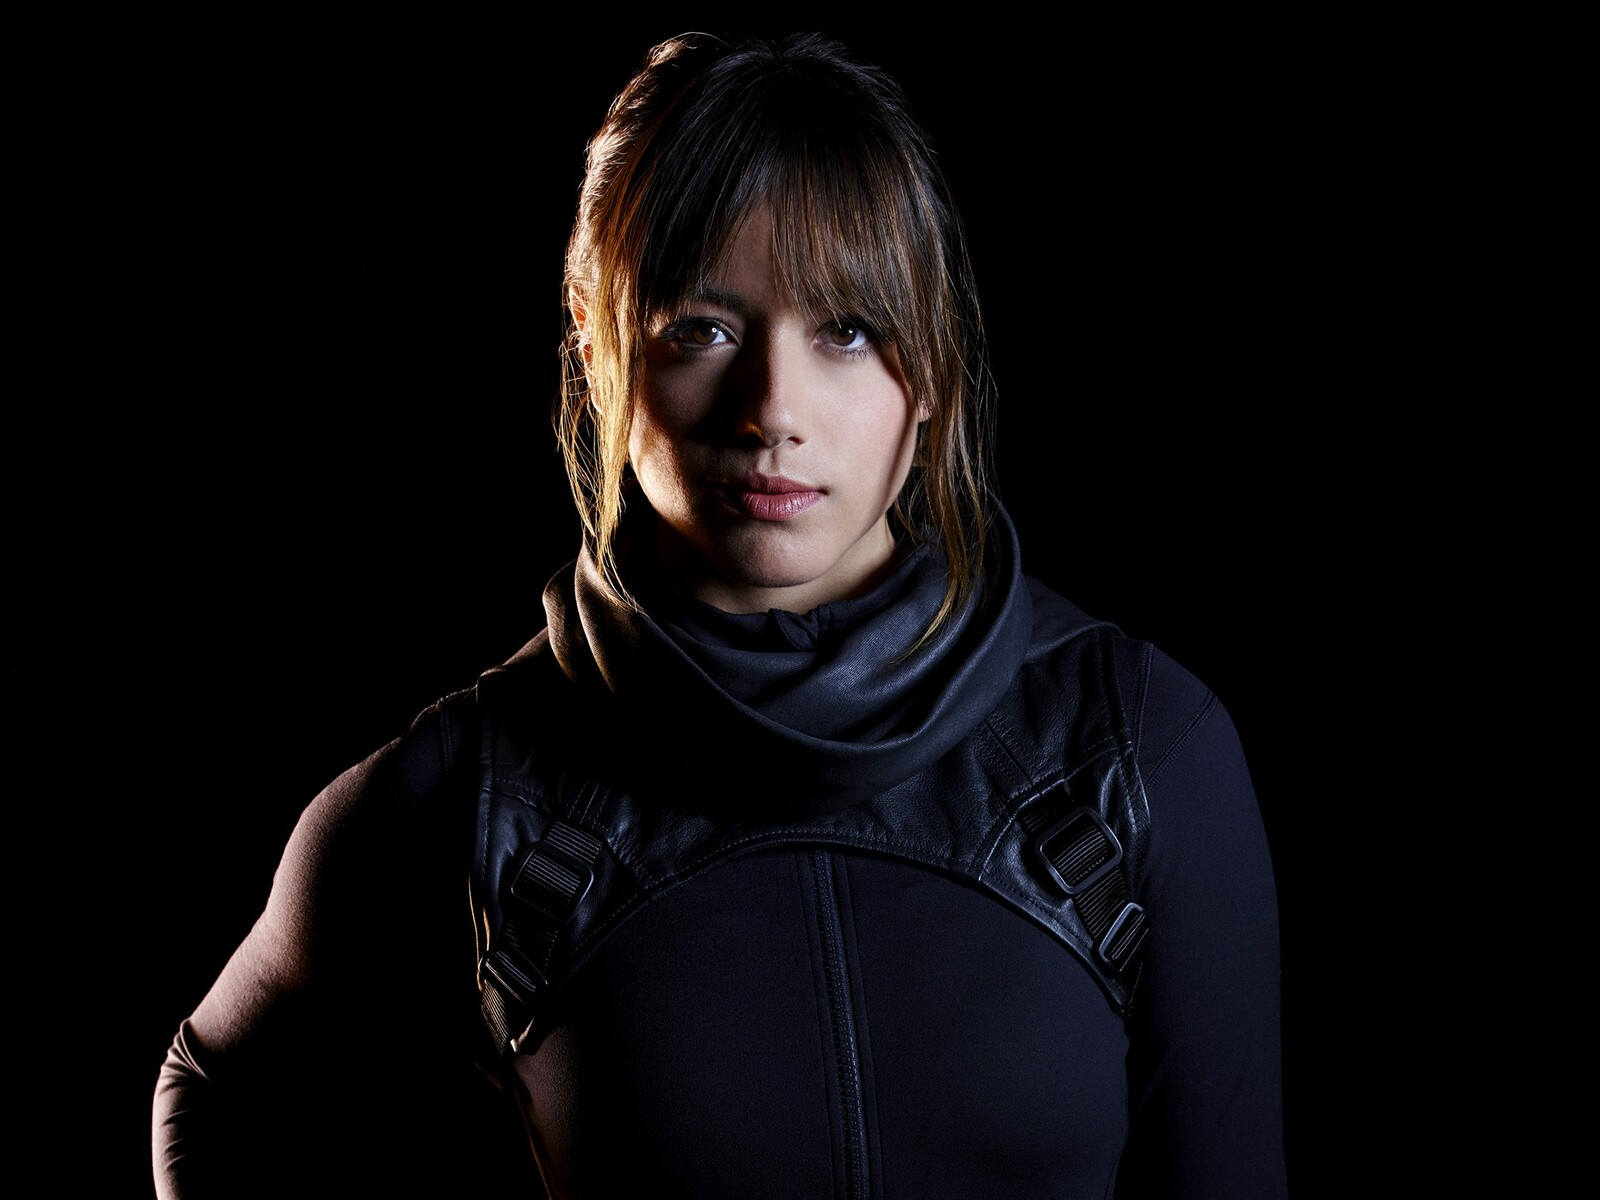 chloe-bennet-in-agent-of-shield.jpg